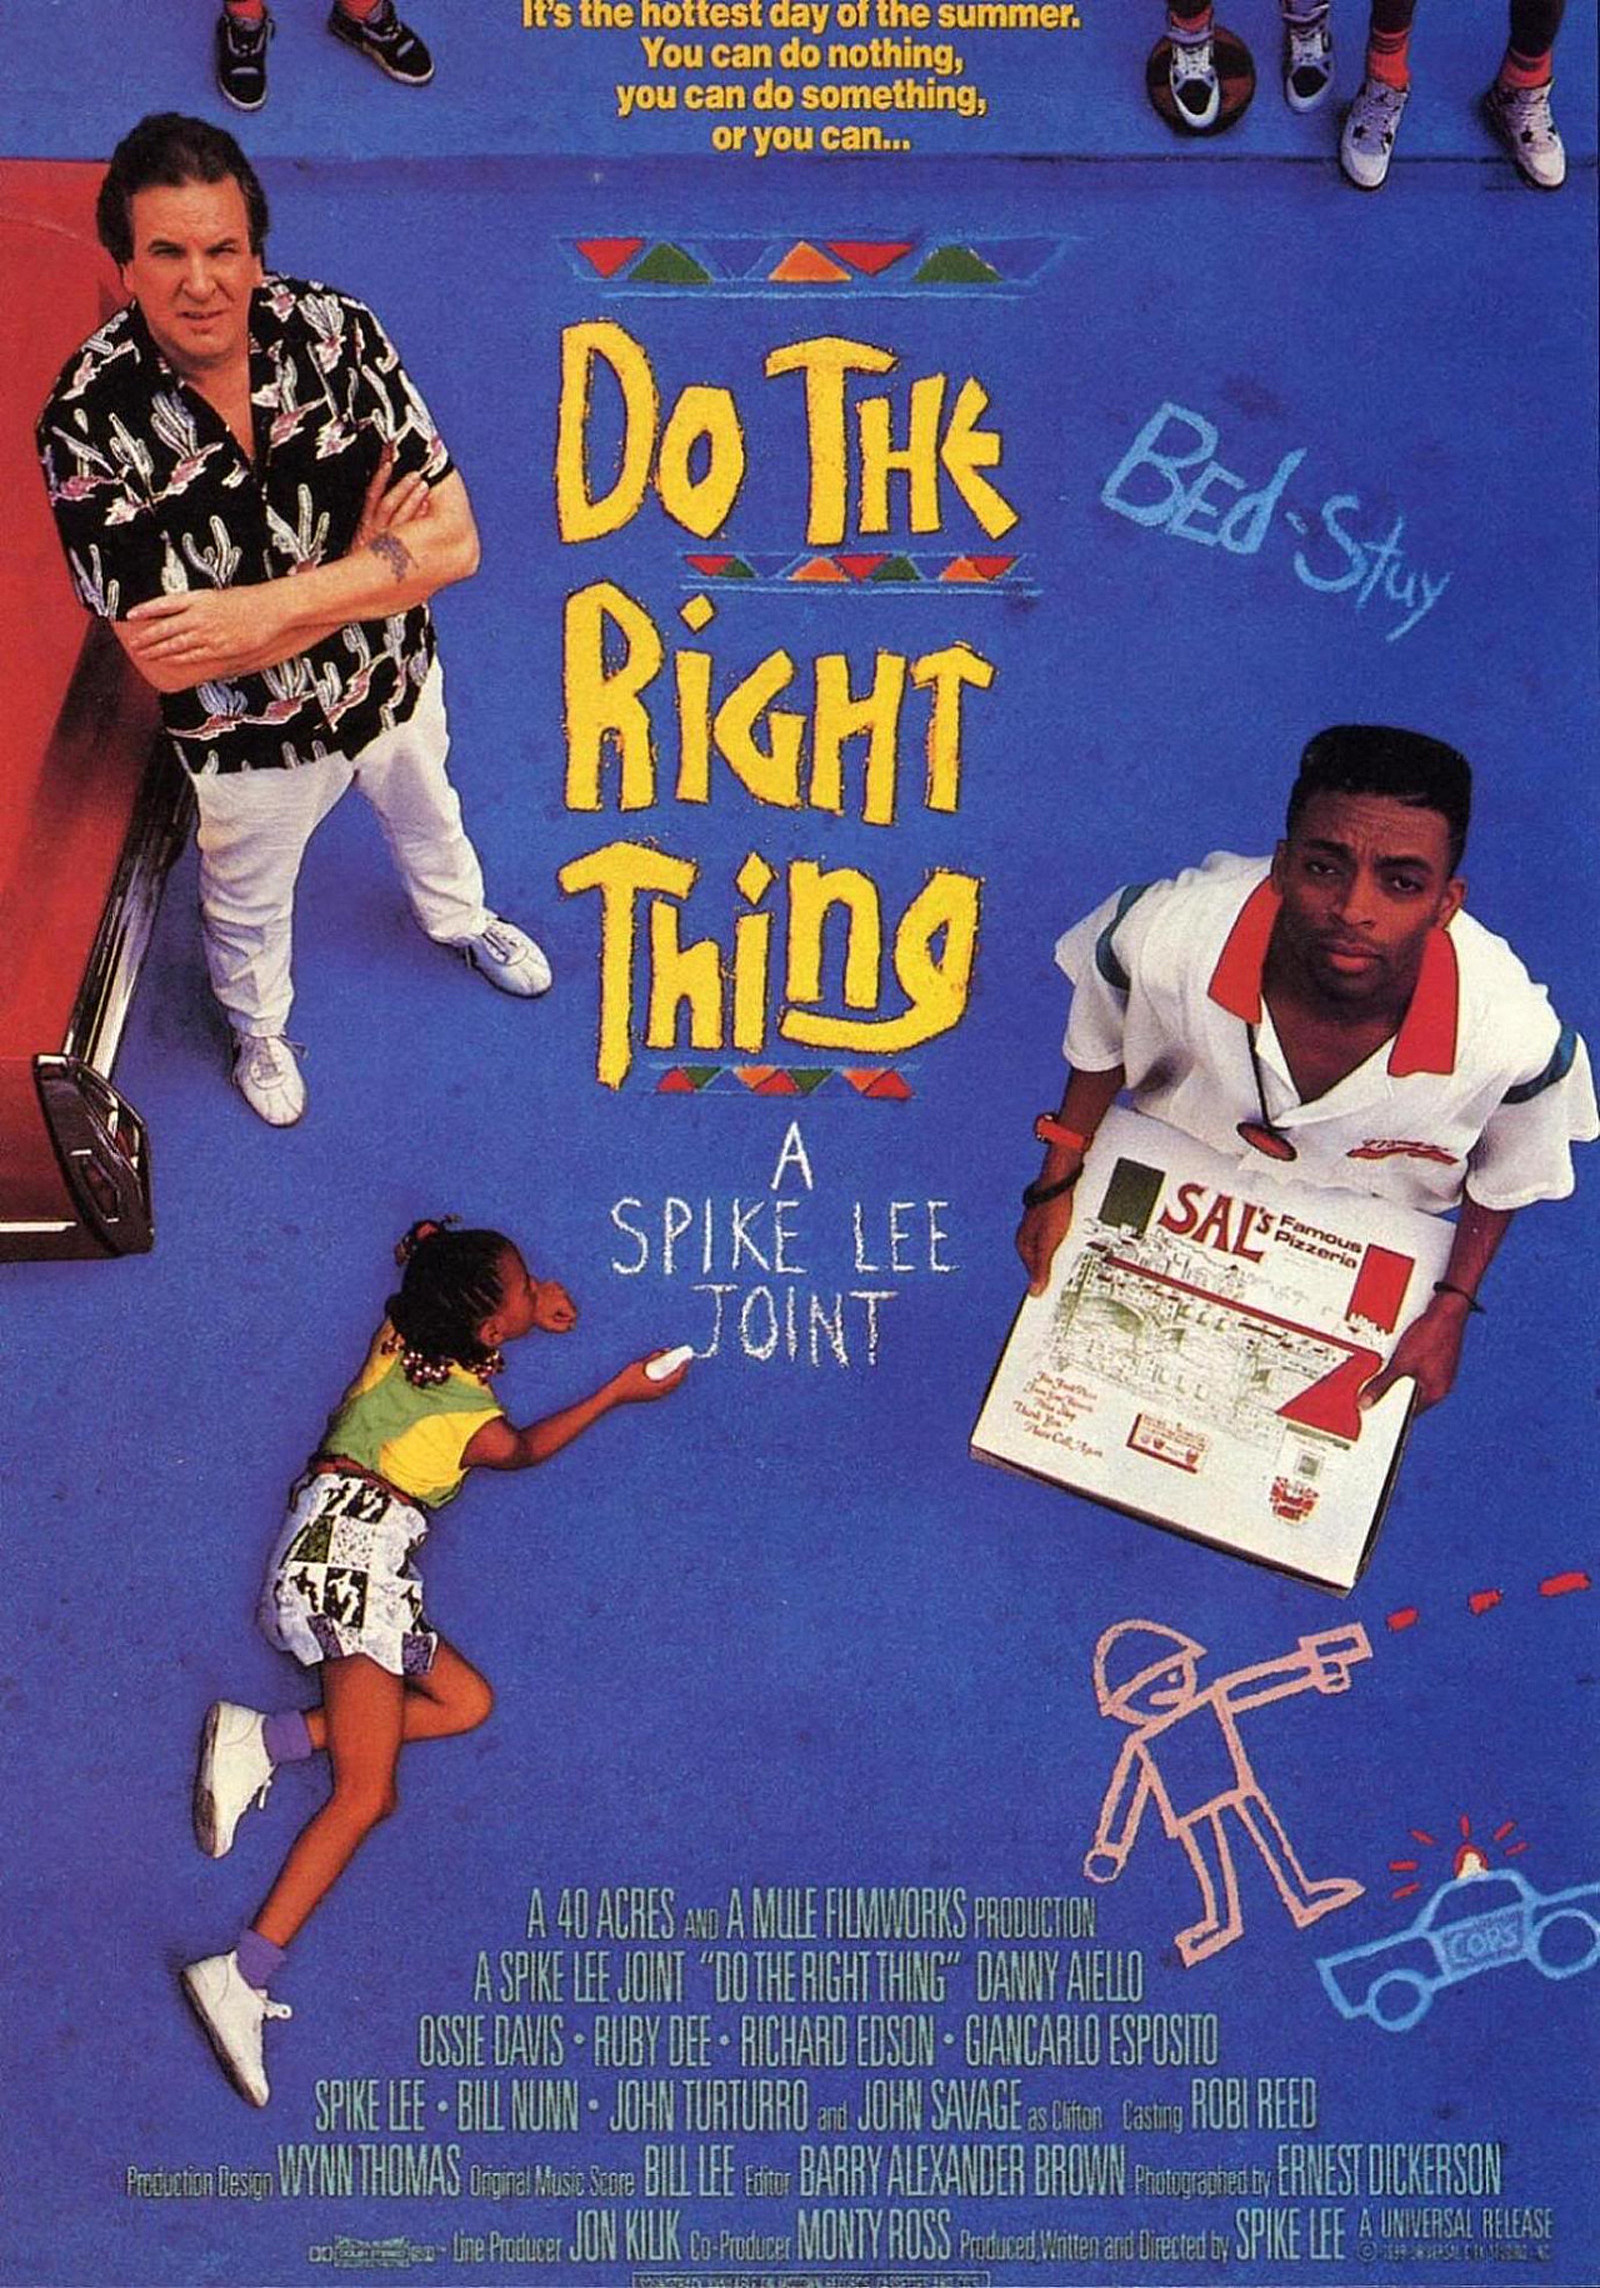 an analysis of the racism in the movie do the right thing directed by spike lee 90% of spike lee's masterpiece do the right thing is a perfectly developed character study of a wide movie had been directed by a white man it would be racist 4.